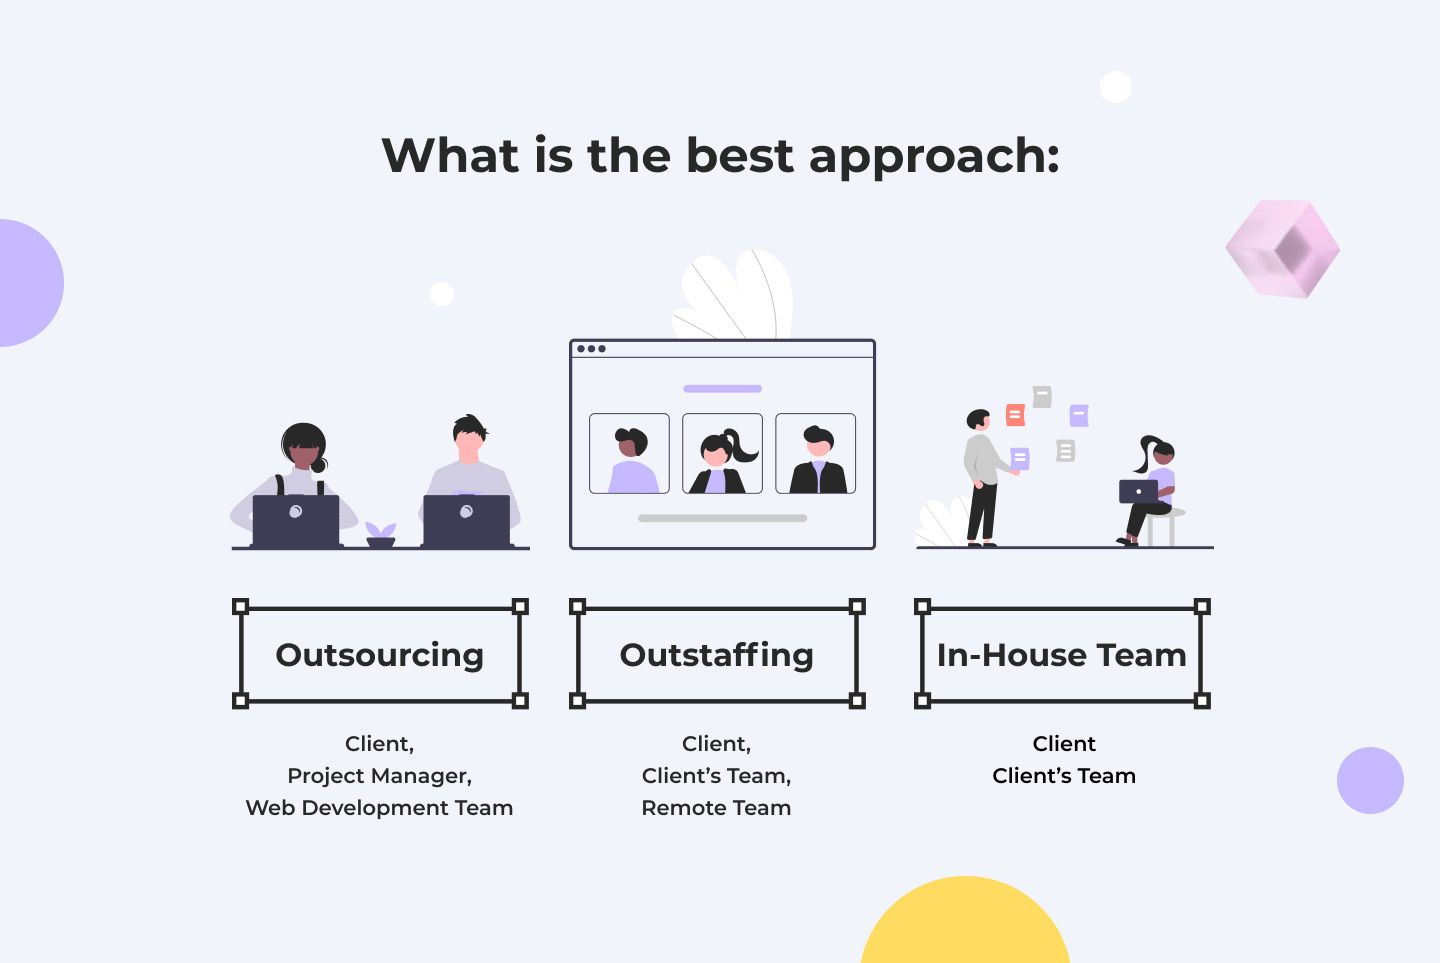 Outsourcing vs outstaffing vs in-house team